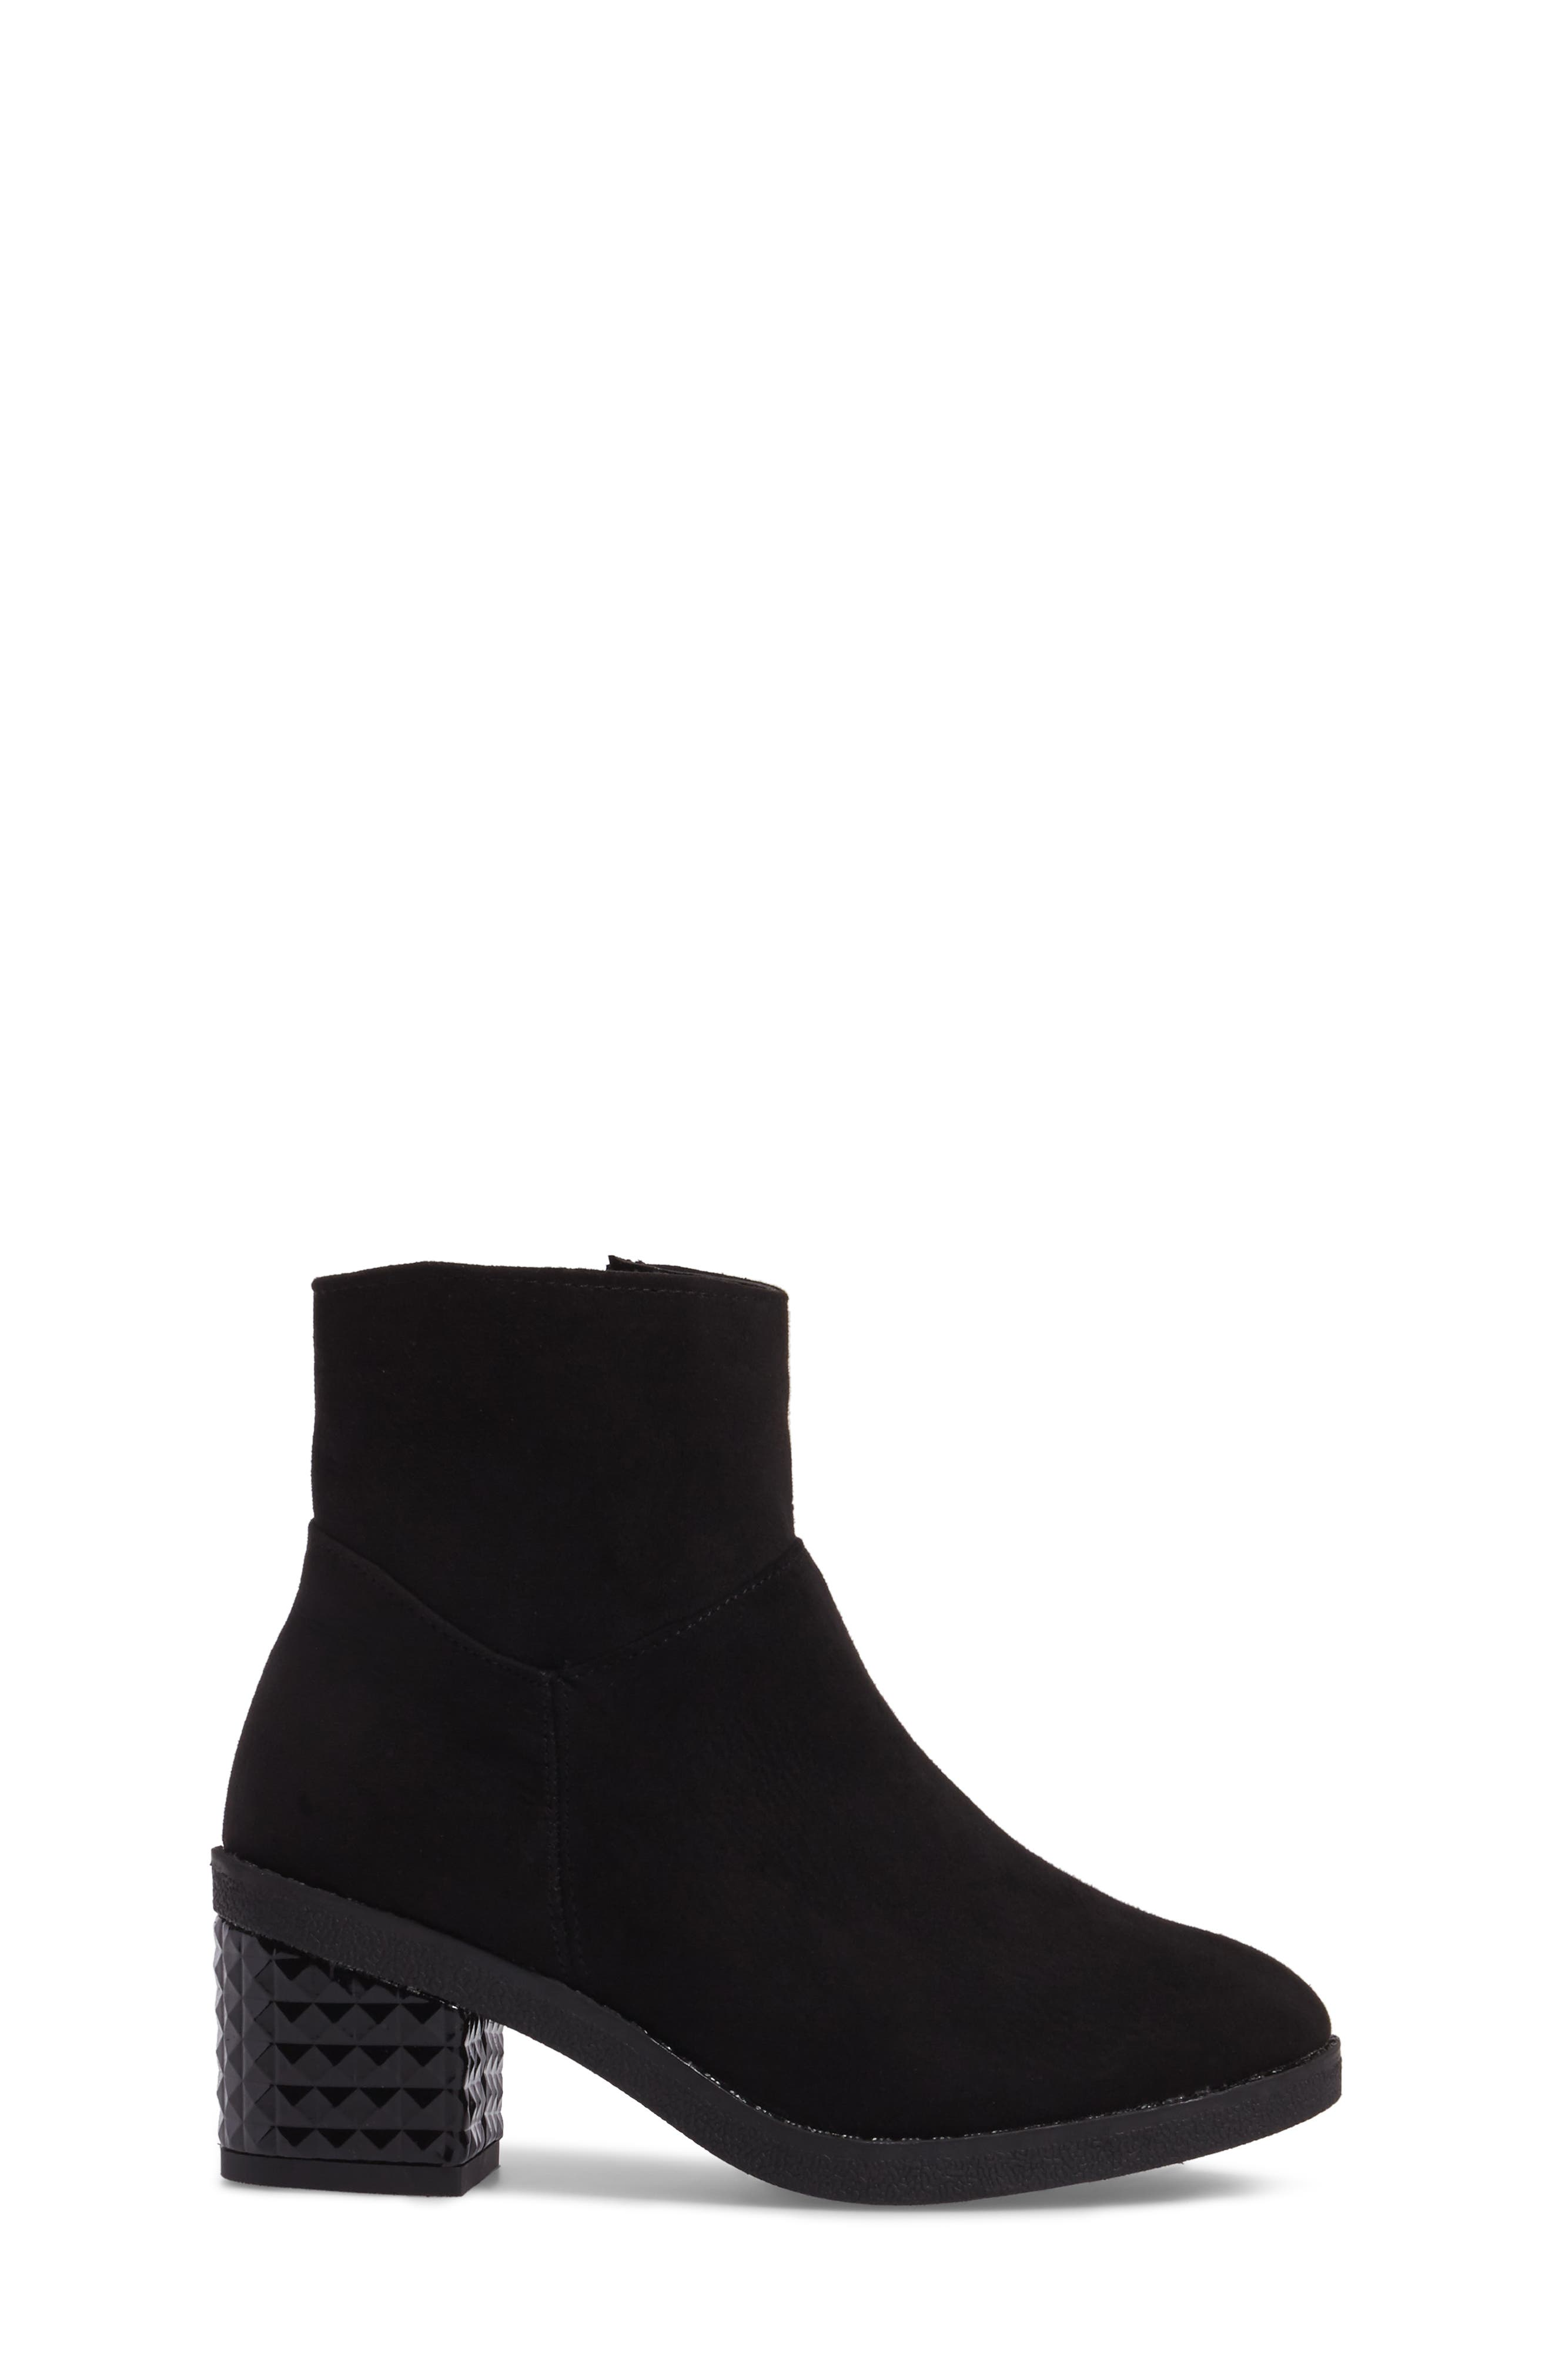 Fawn Dawn Bootie,                             Alternate thumbnail 3, color,                             Black